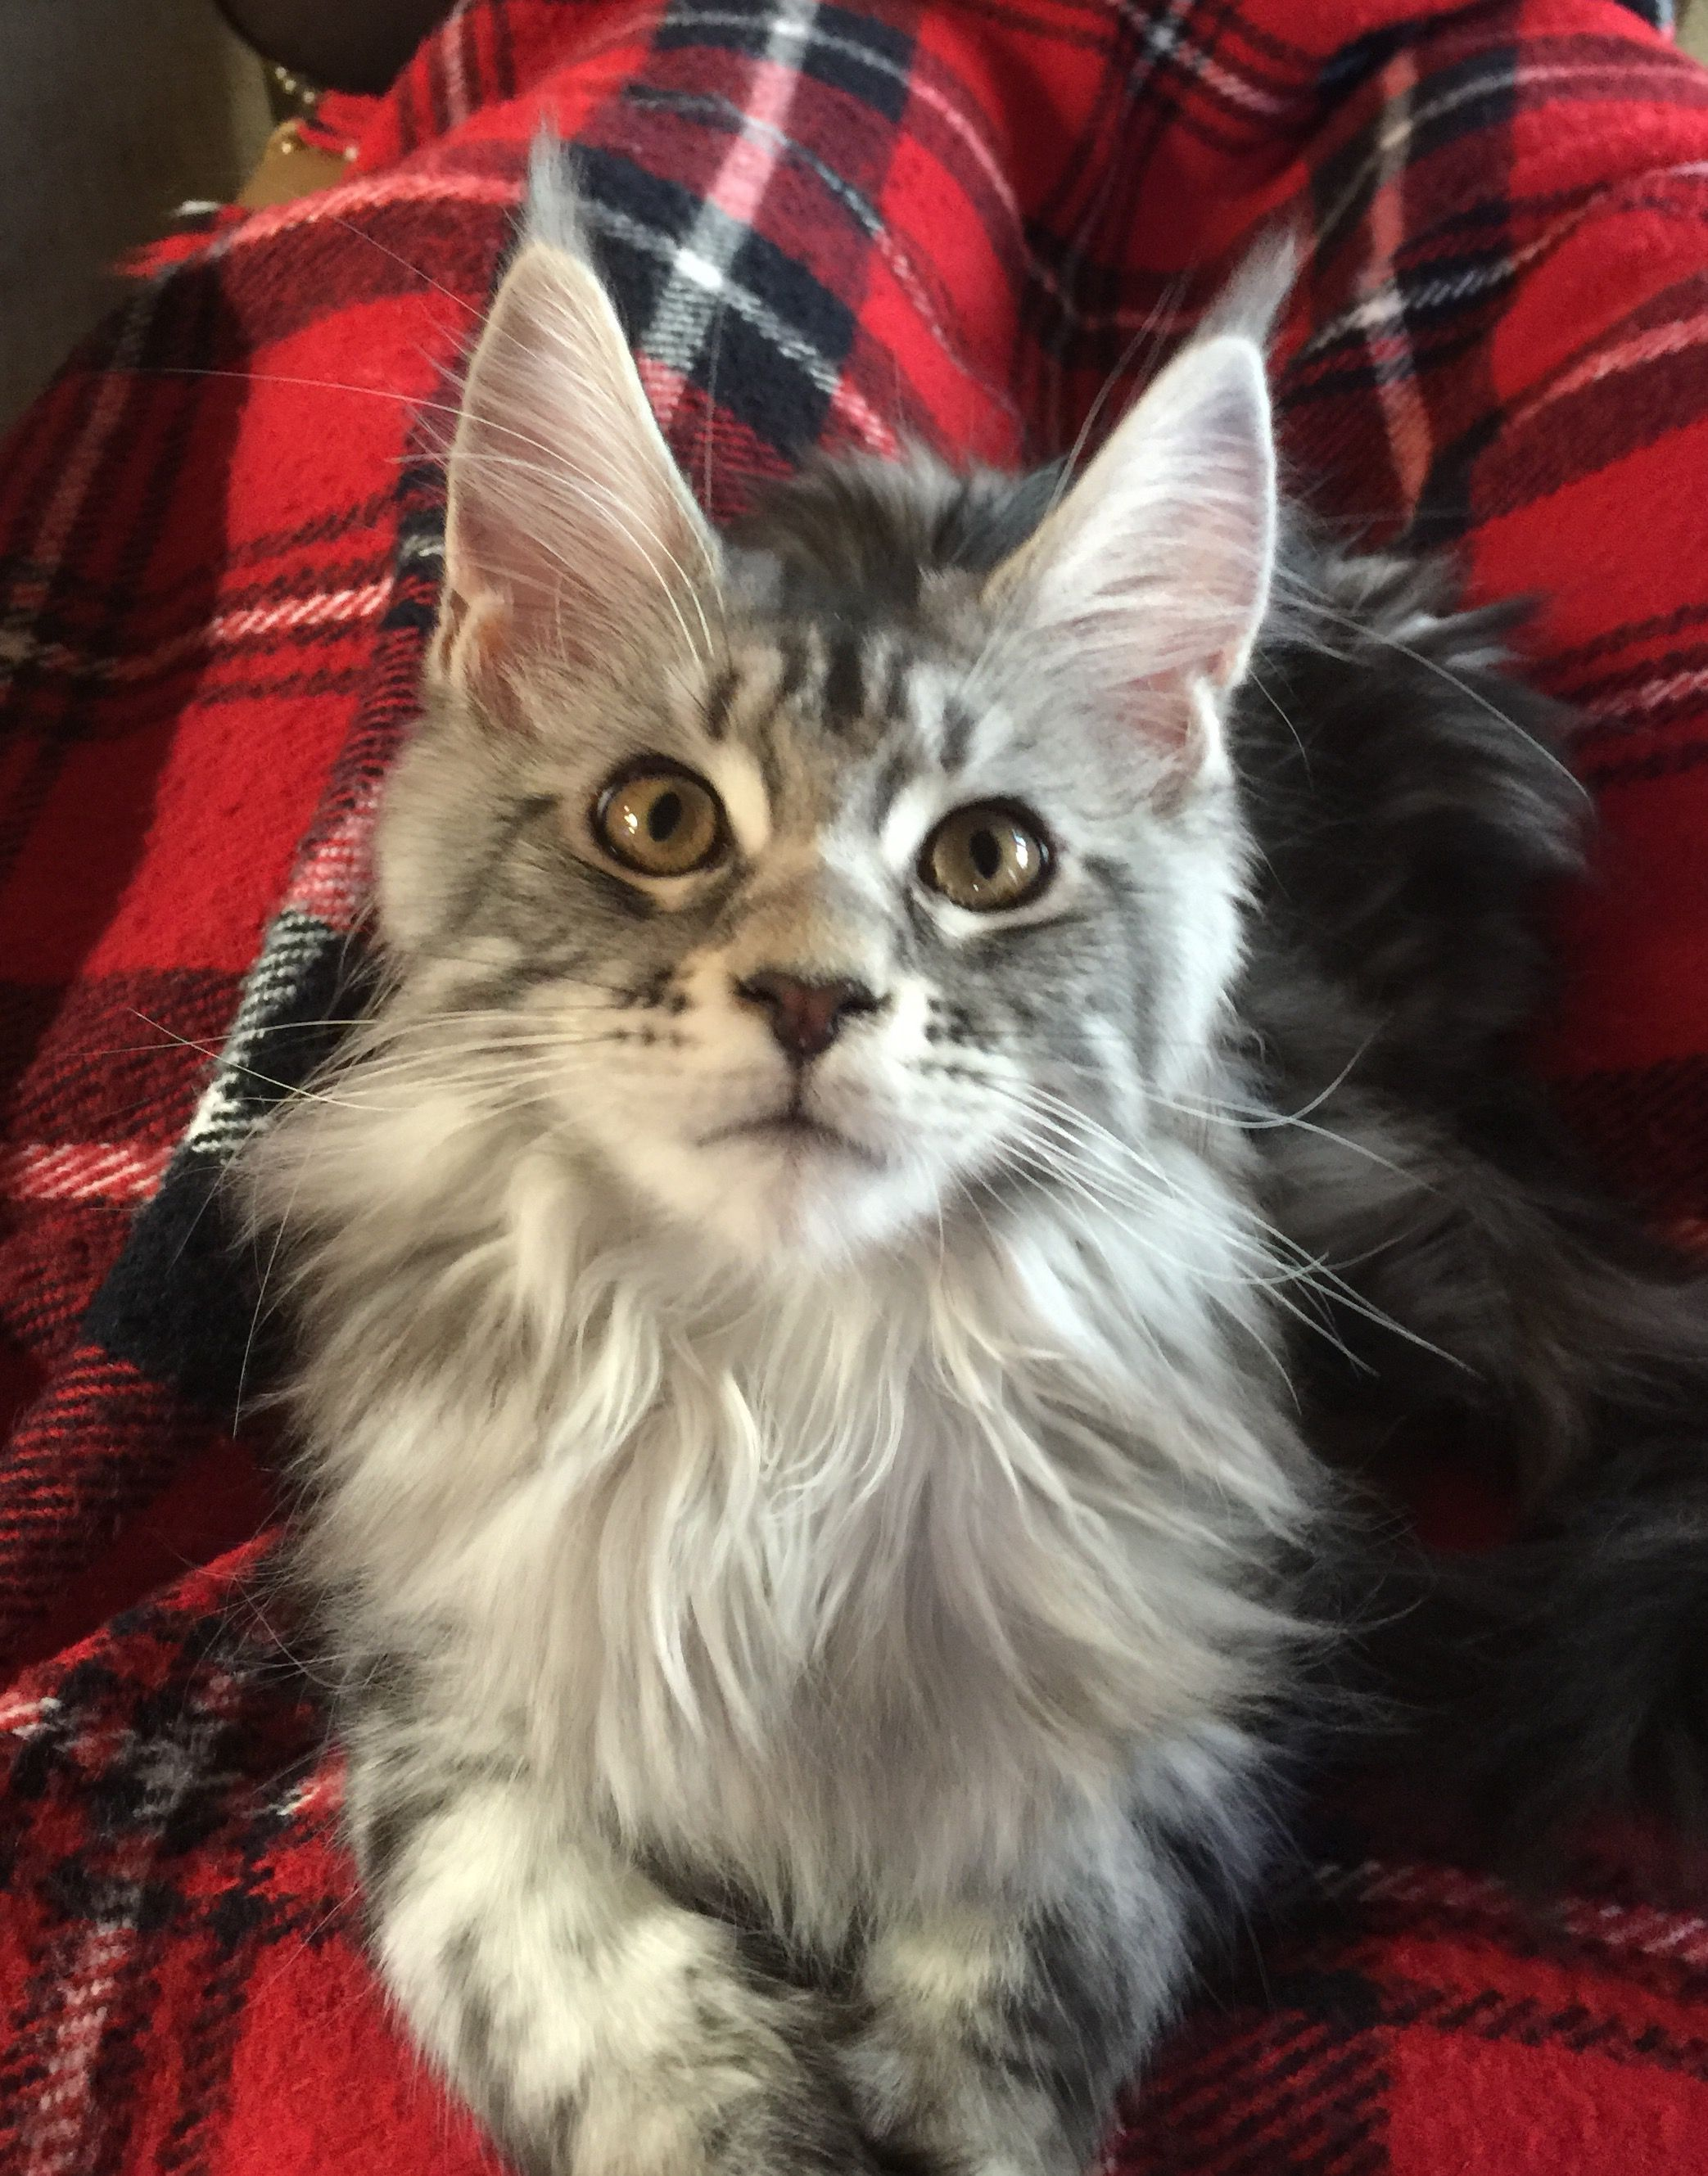 Maine Coon Kittens Jacksonville Fl : maine, kittens, jacksonville, Animal